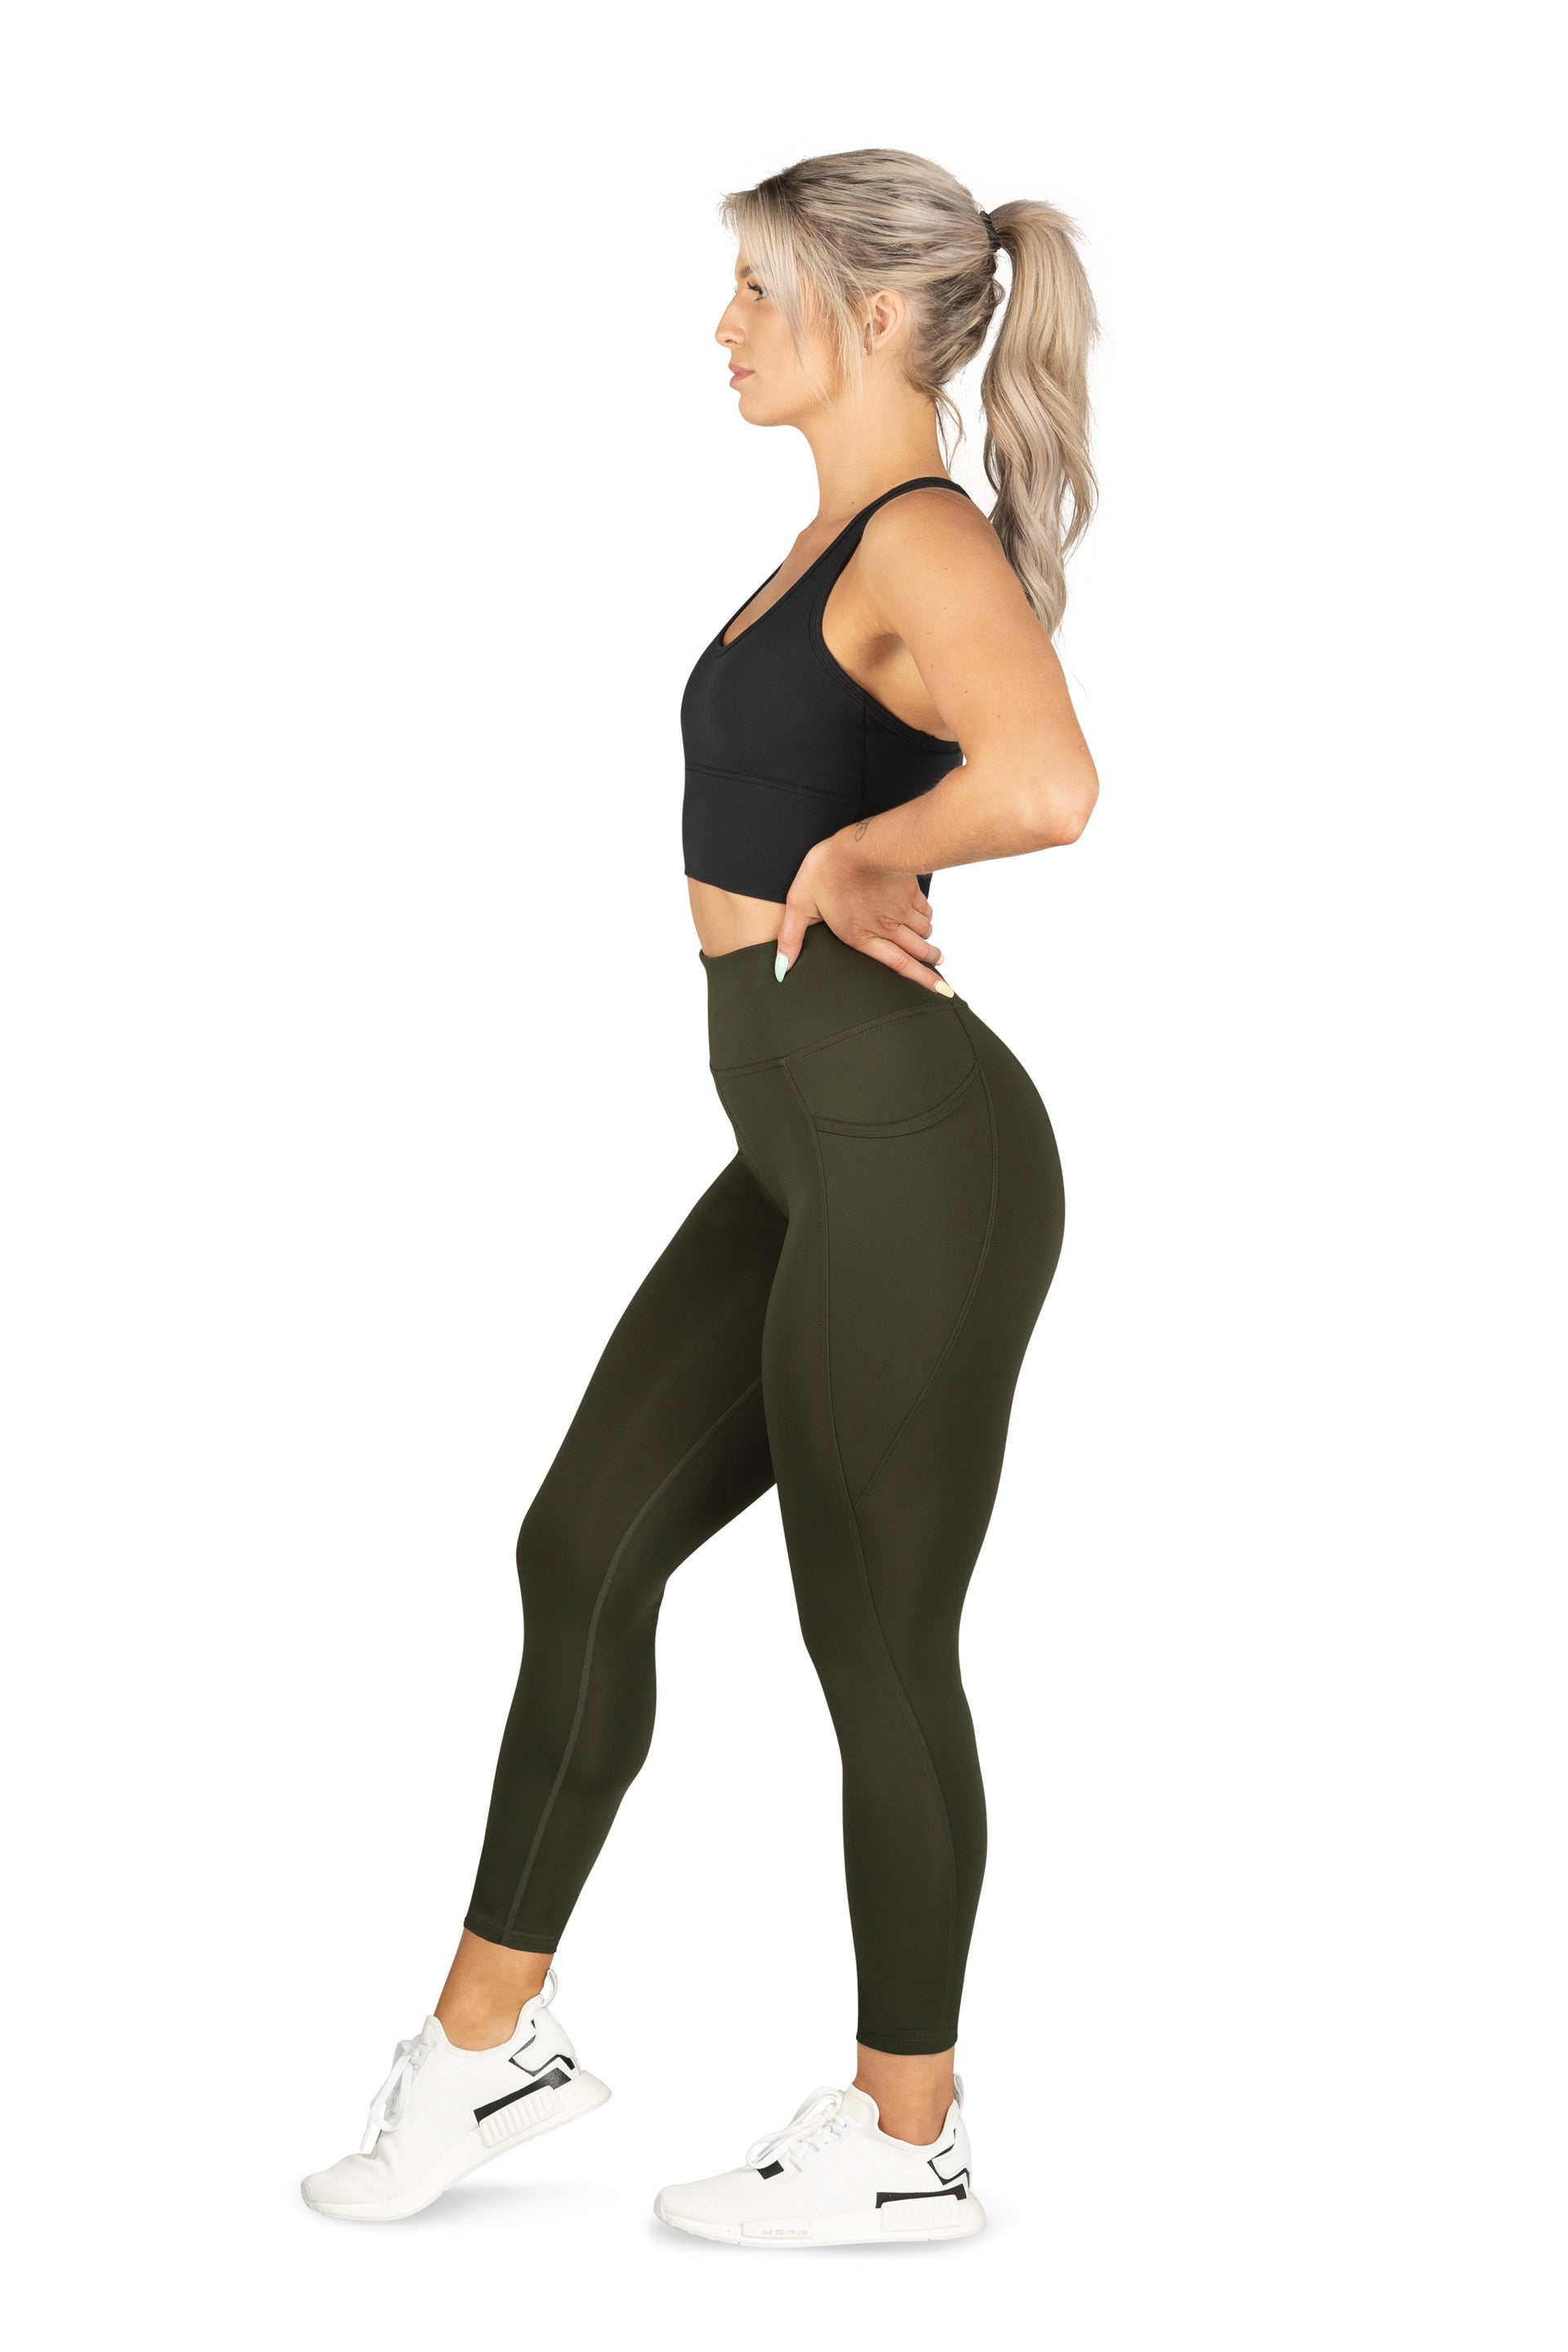 HIGH WAISTED SIDE POCKET 7/8 TIGHT ( RECYCLED PERFORMANCE KNIT ) - GREEN